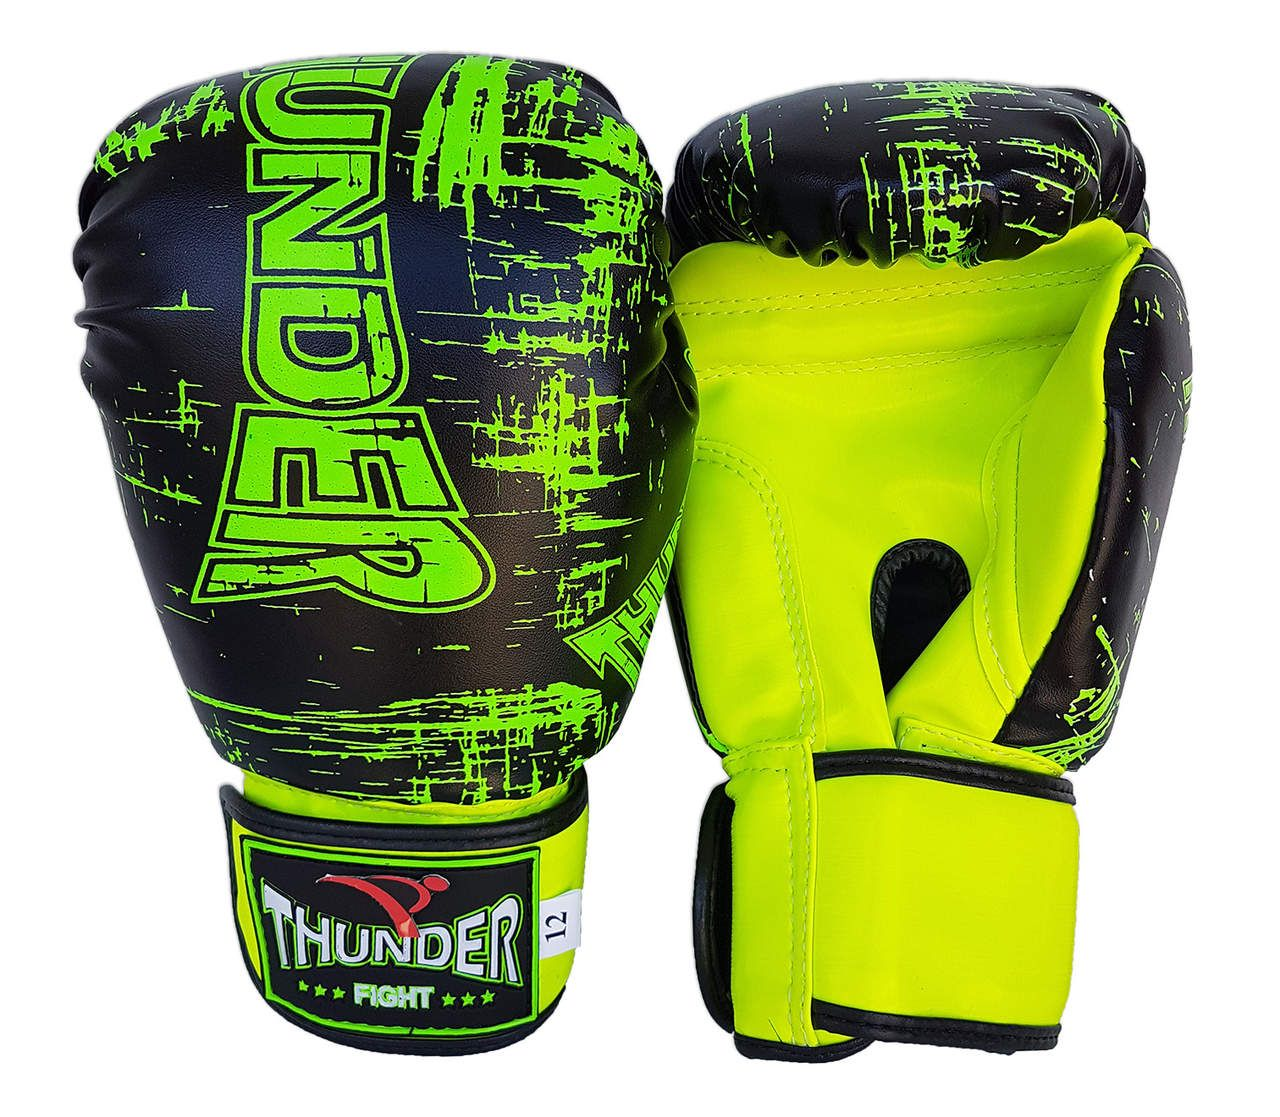 Luva de Boxe / Muay Thai 12oz - Preto Riscado Verde - Thunder Fight - PRALUTA SHOP